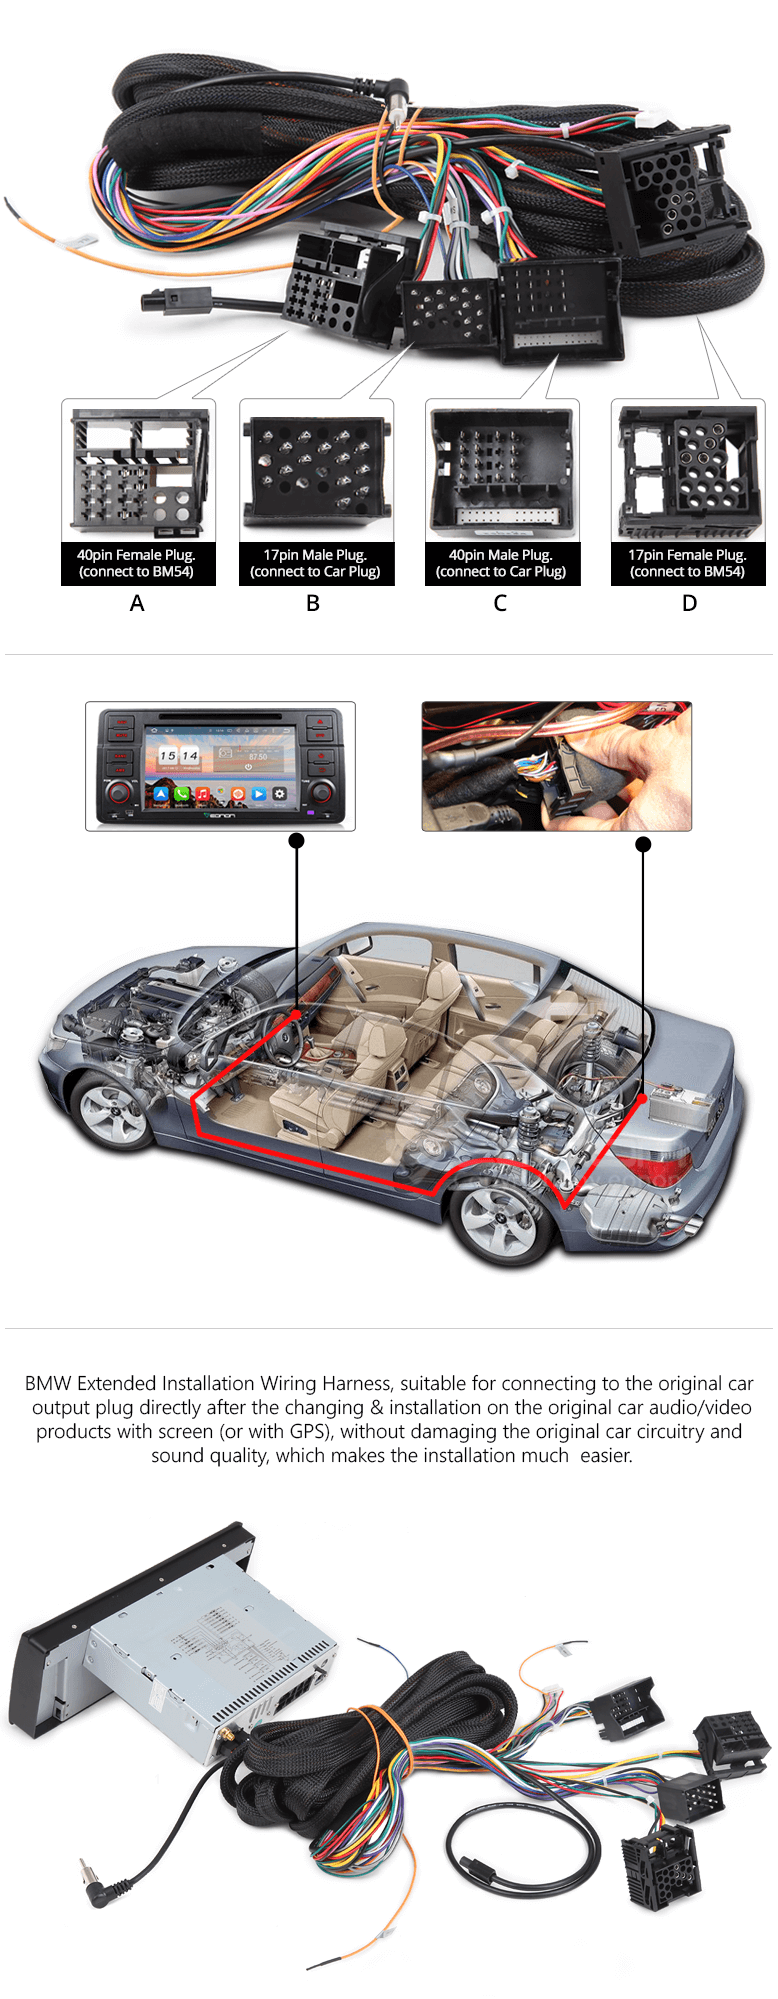 Eonon Ga7150a Bmw E46 Android 60 Octa Core Car Stereo Gps Wiring Audio Monitor Only Suitable For Ga7166a Ga7201a Ga6150f Ga6165f Ga6166f Ga6201f Please Check Your Power Plugs Pin Number In The Trunk Before Purchasing